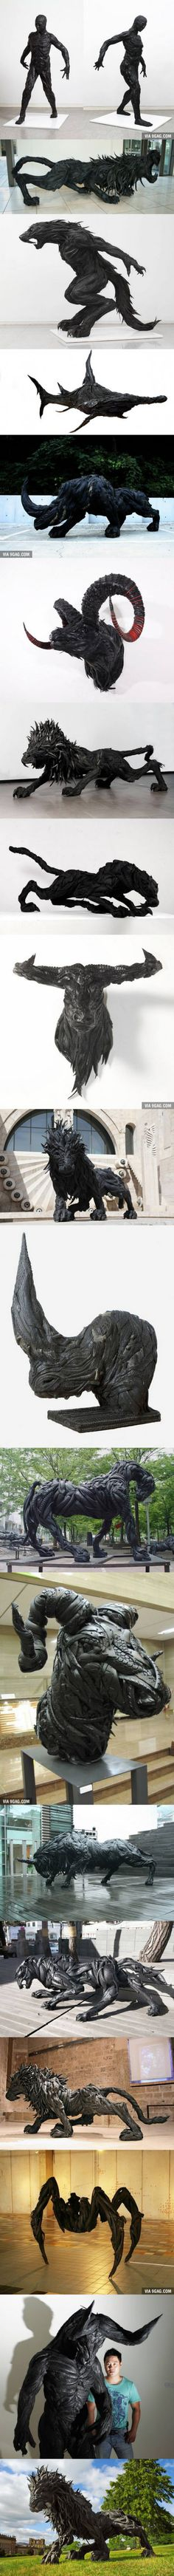 Sculptures made from recycled old tires